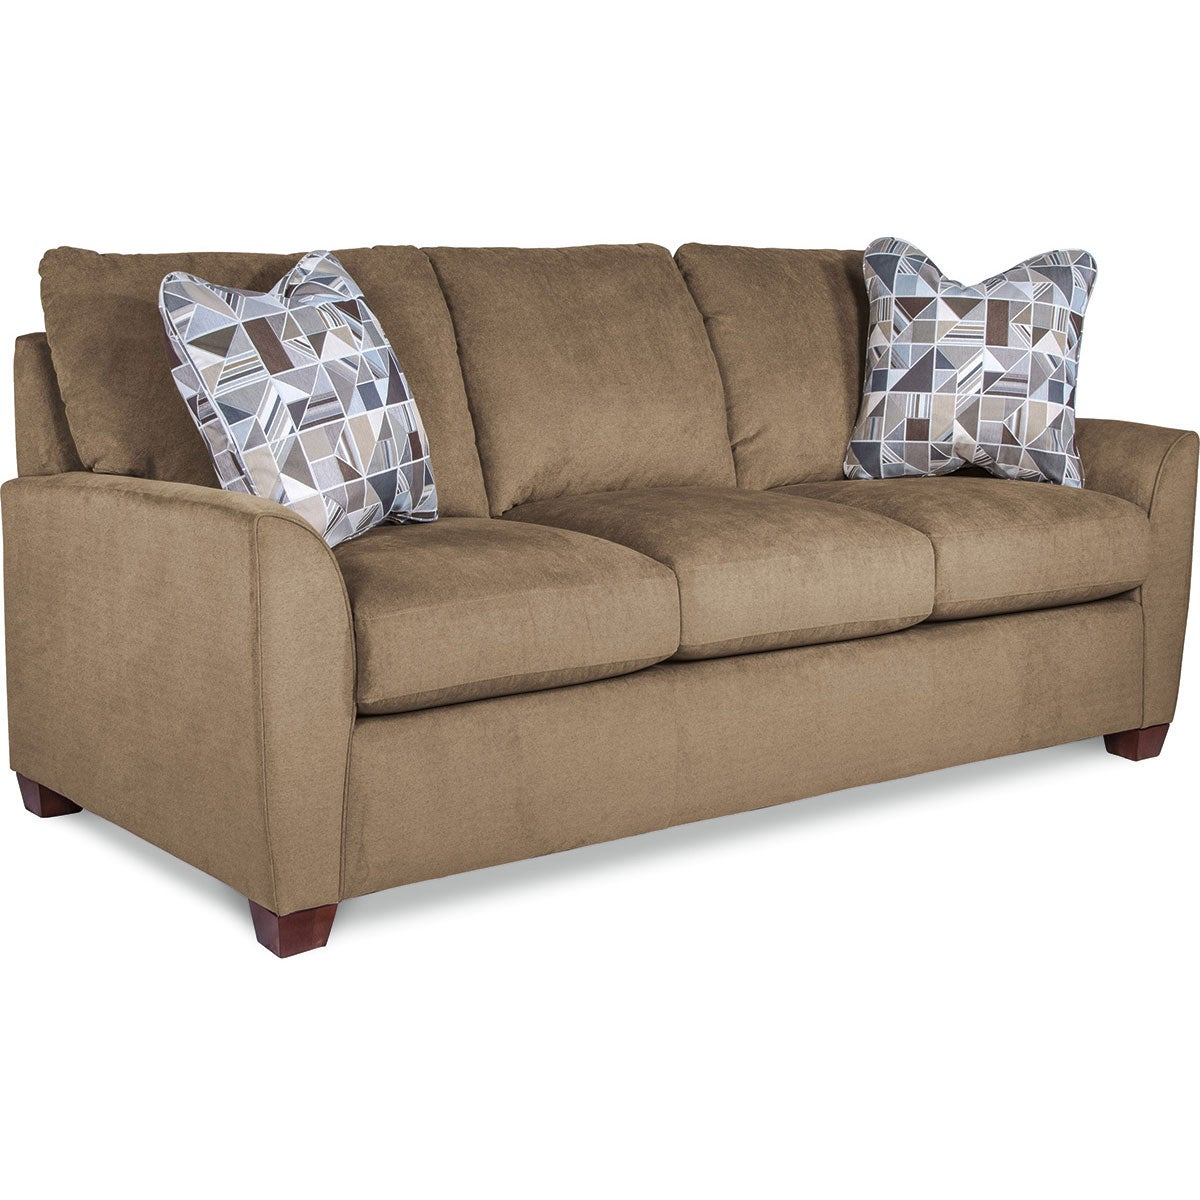 Amy premier sofa for Divan furniture